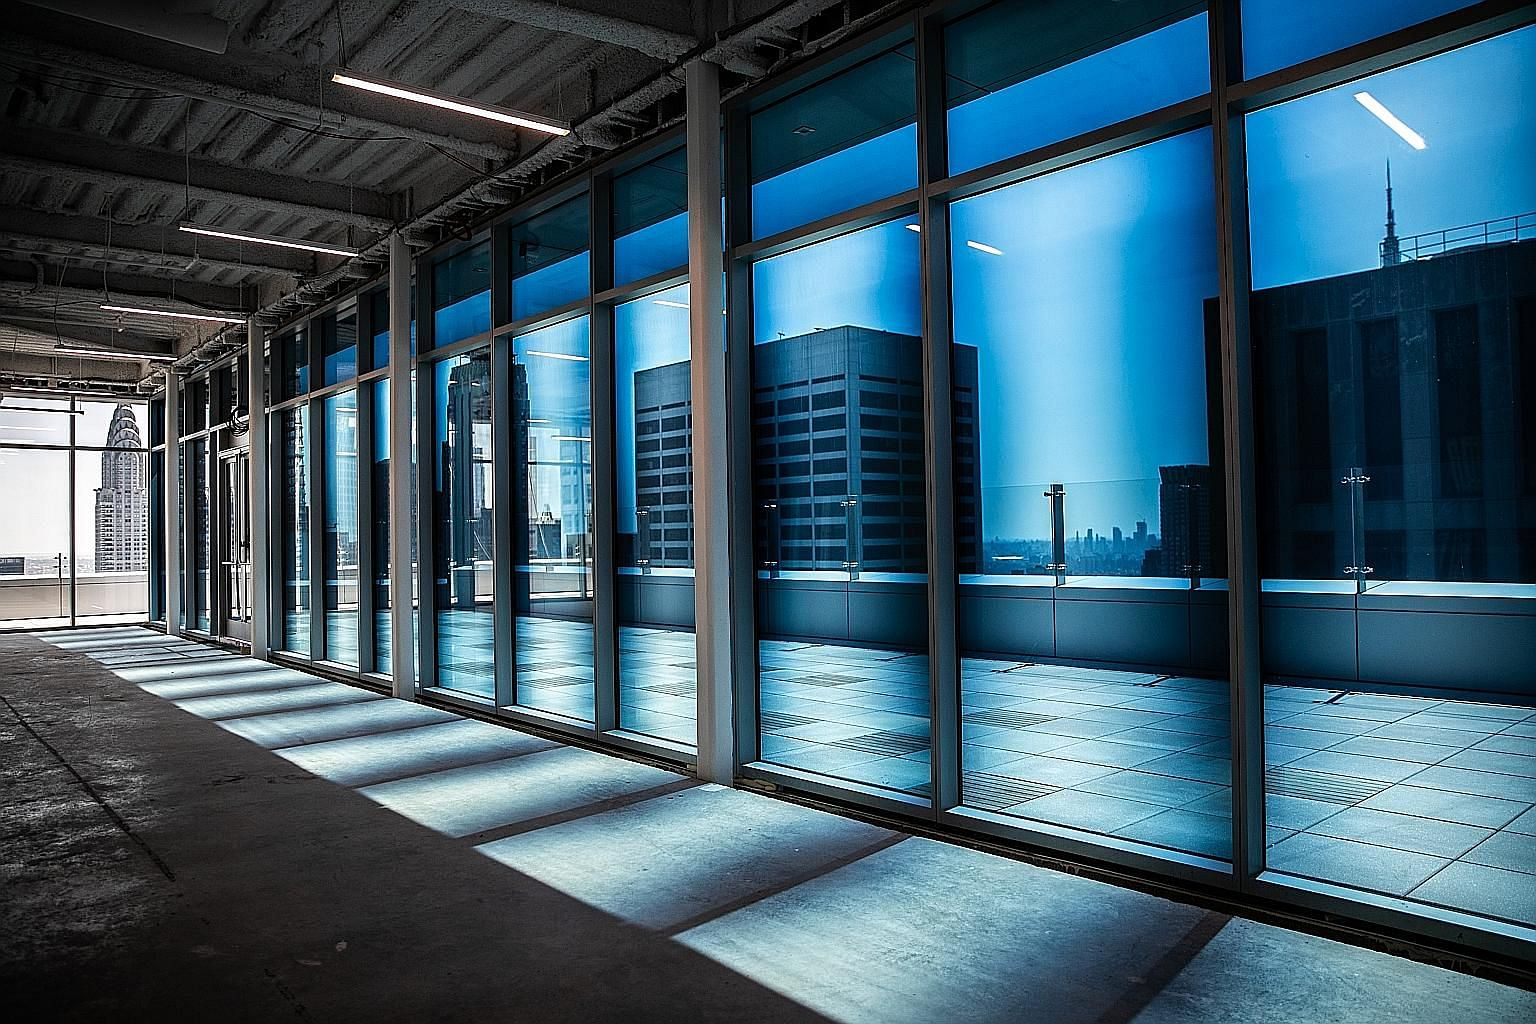 Smart windows made by View darken as the sun becomes brighter in a building in midtown Manhattan.